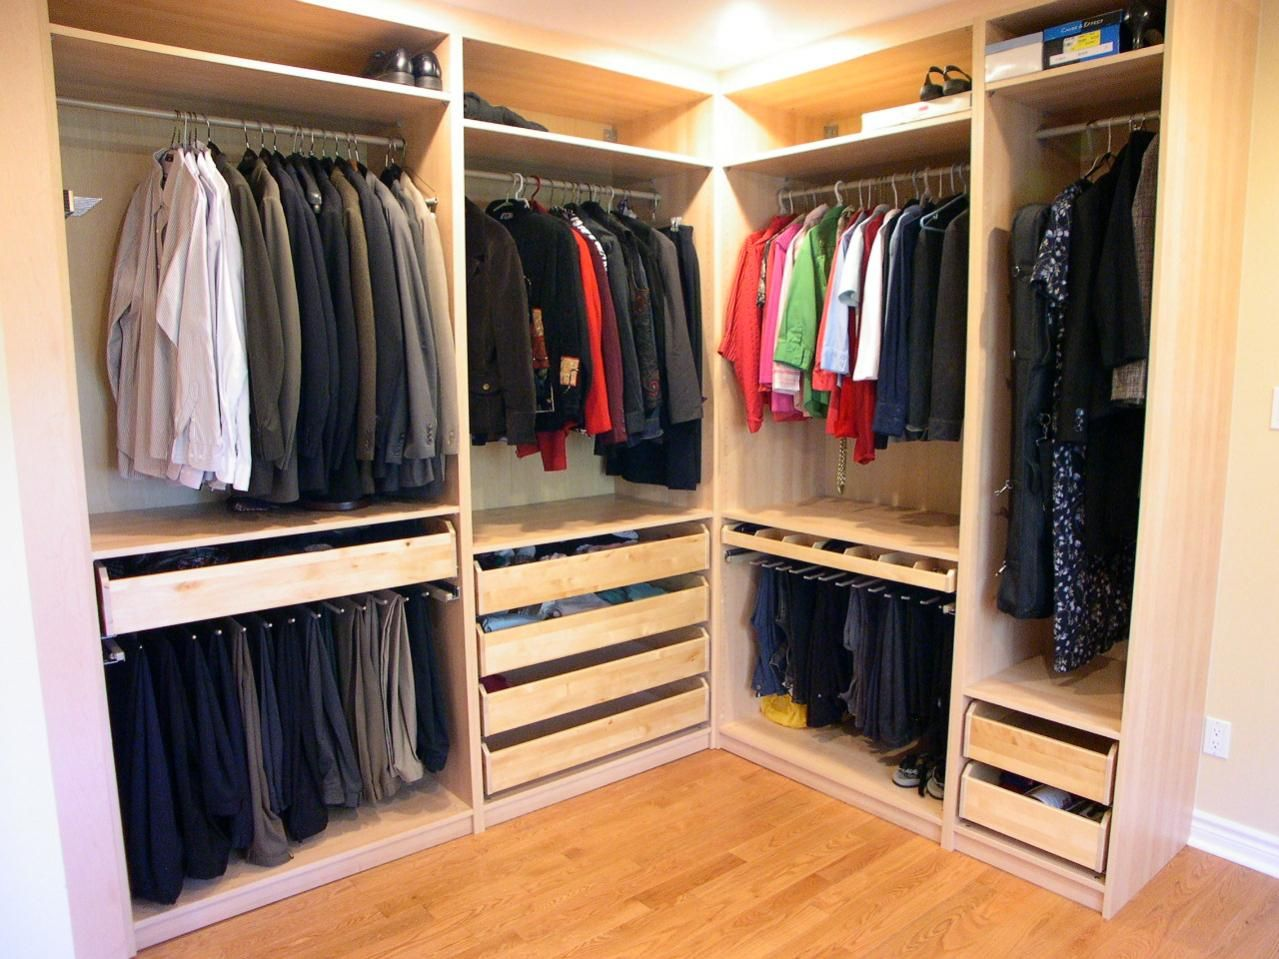 Engaging Chic Curved Closet Organizer Decoration Inspiration With Wooden Wardrobes And Shelves Also Warm Lighting Astonishing Interior Design Ideas